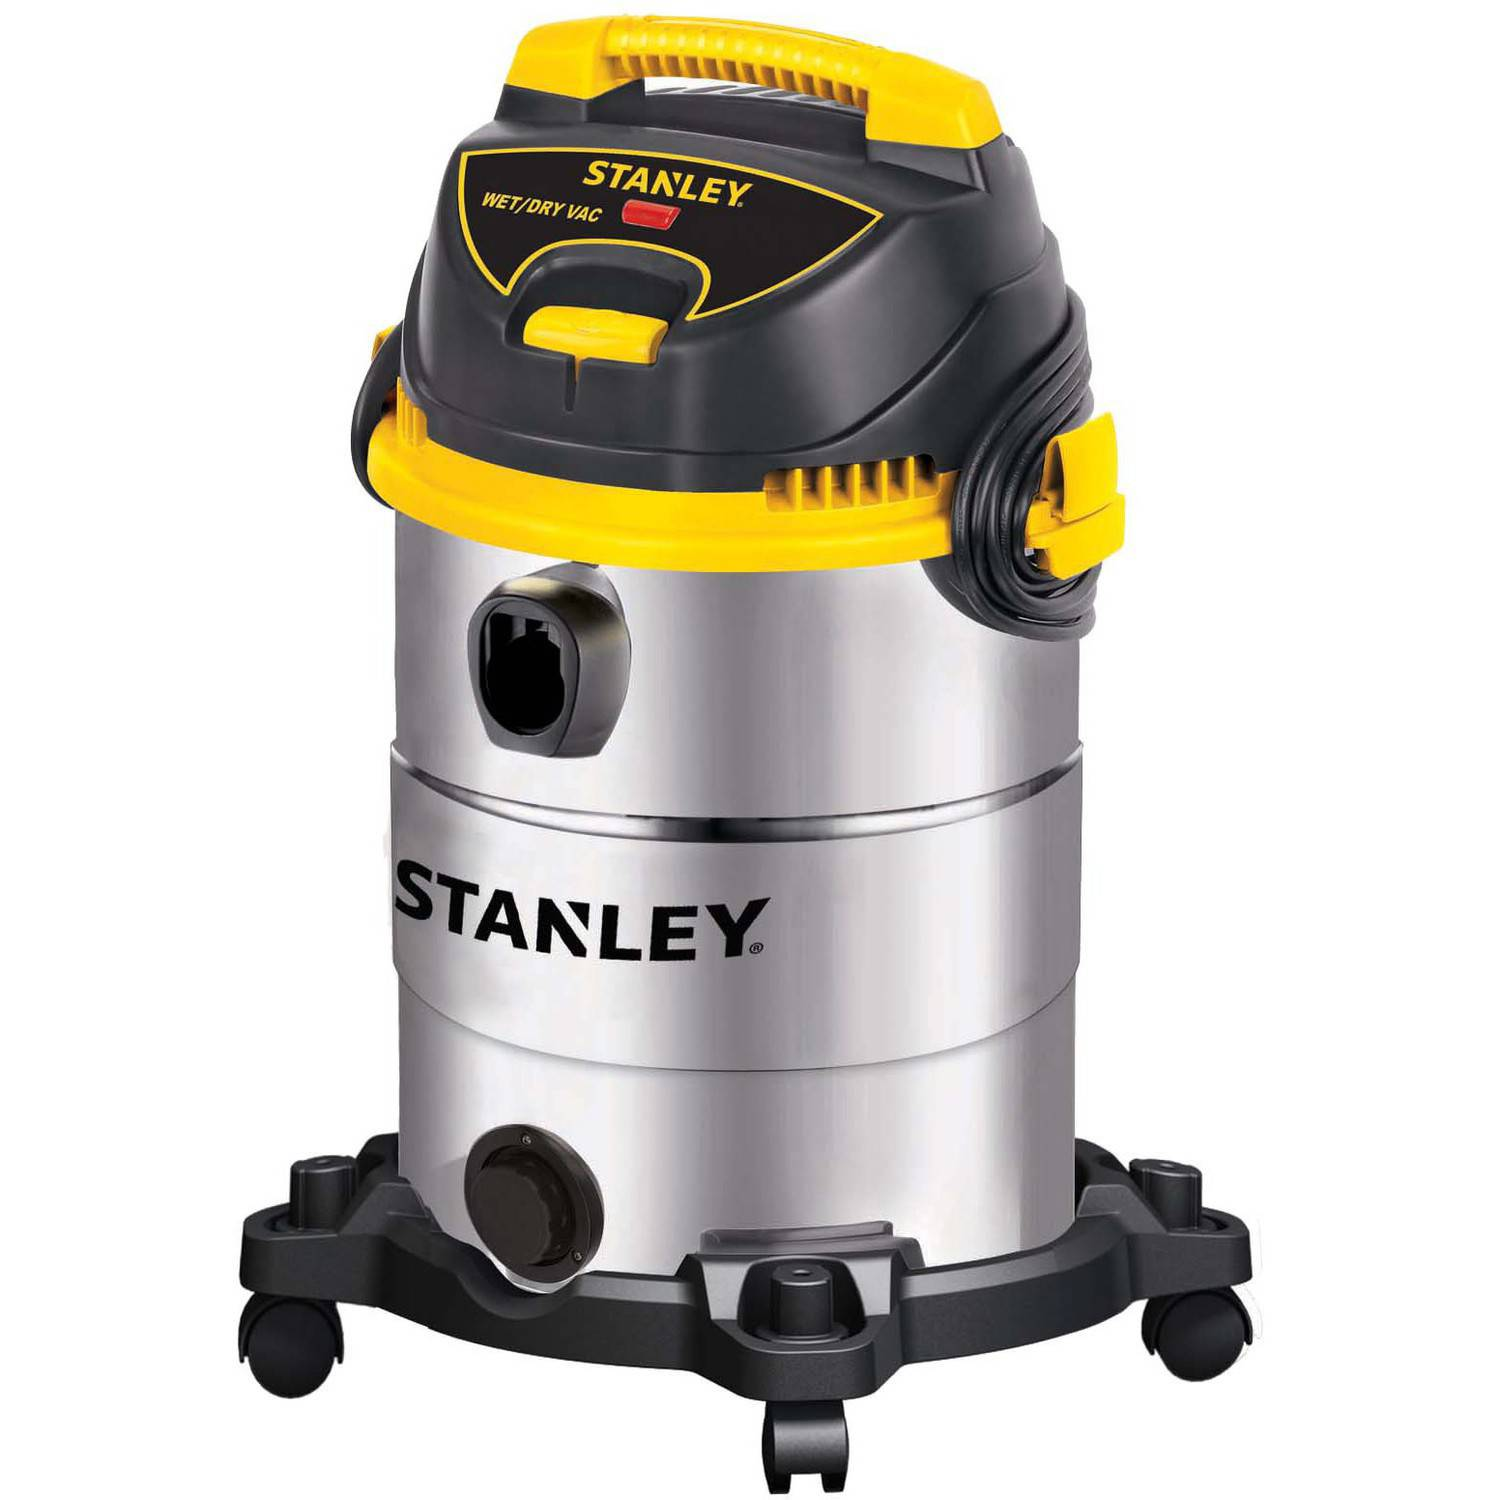 Stanley 6-gallon, 4.5-peak horse power, Stainless Steel, wet dry vacuum